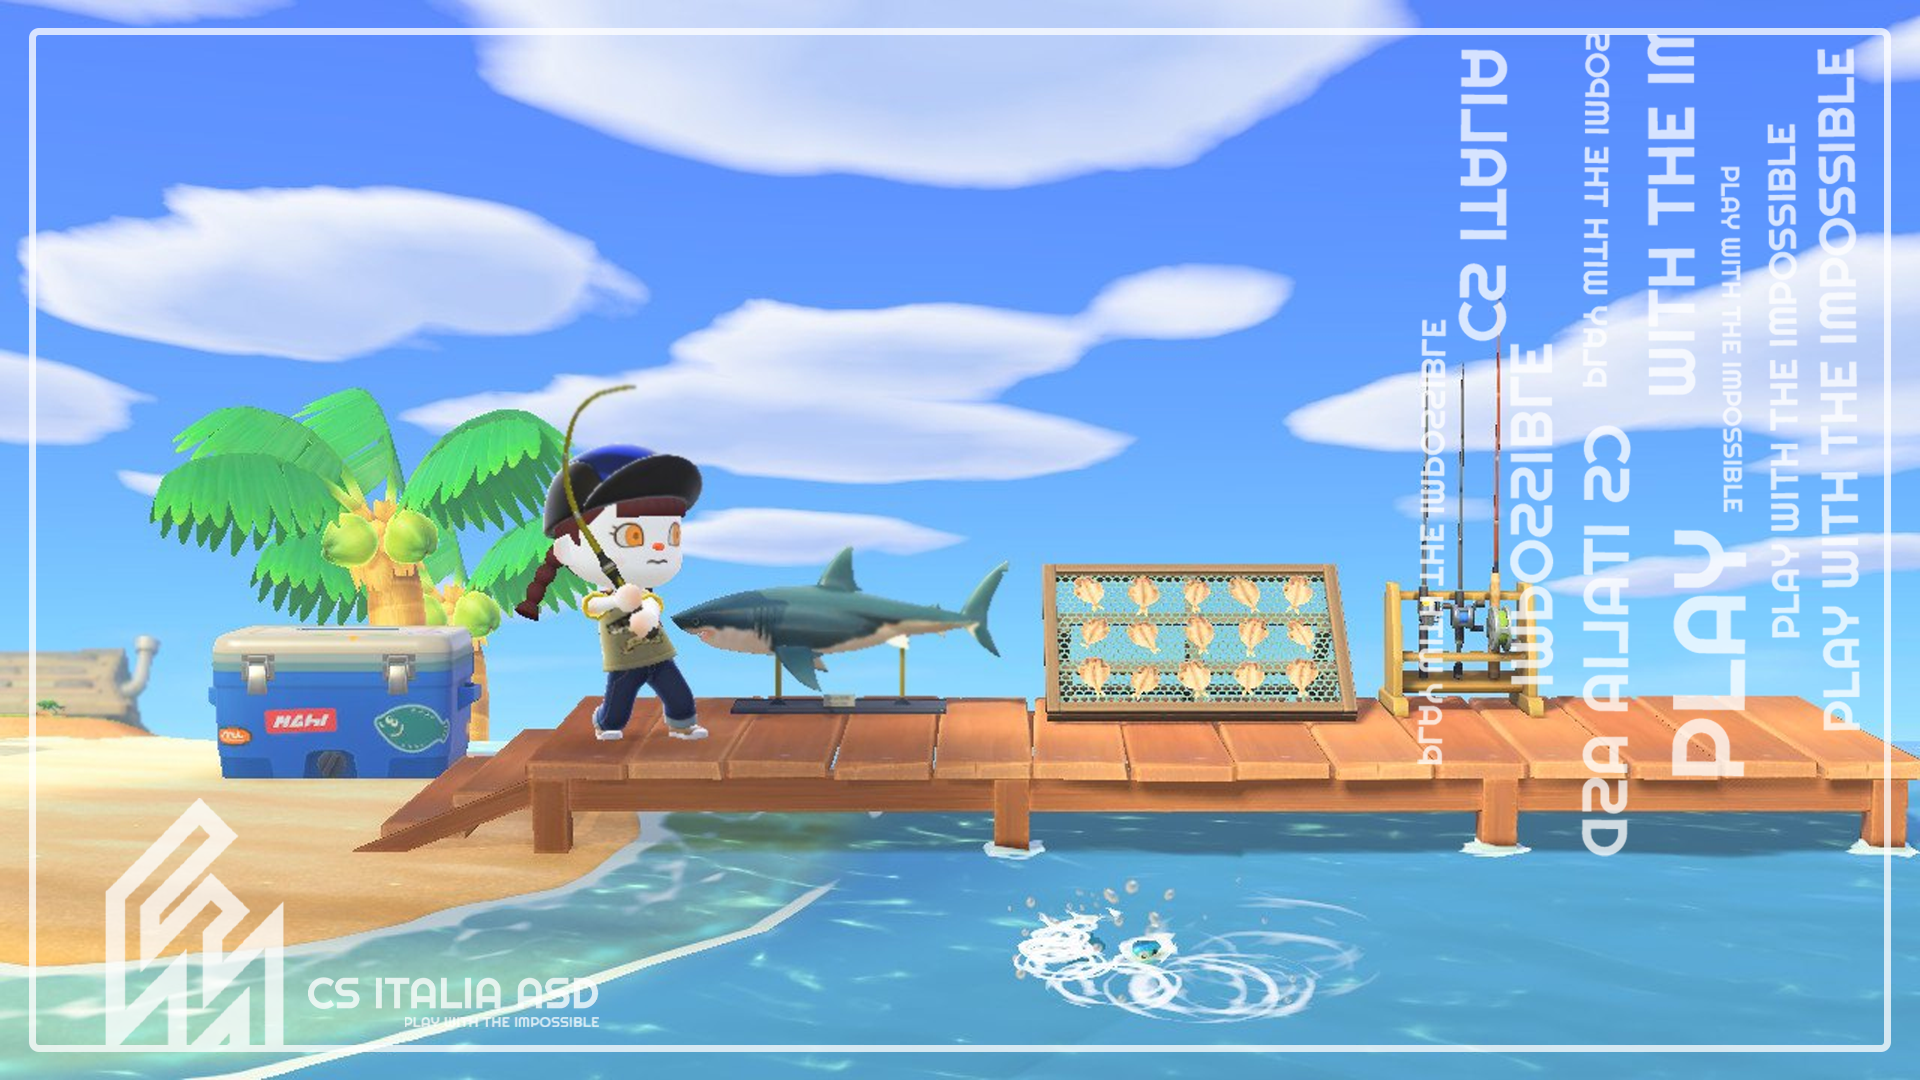 Terza edizione del torneo di pesca di Animal Crossing: New Horizons